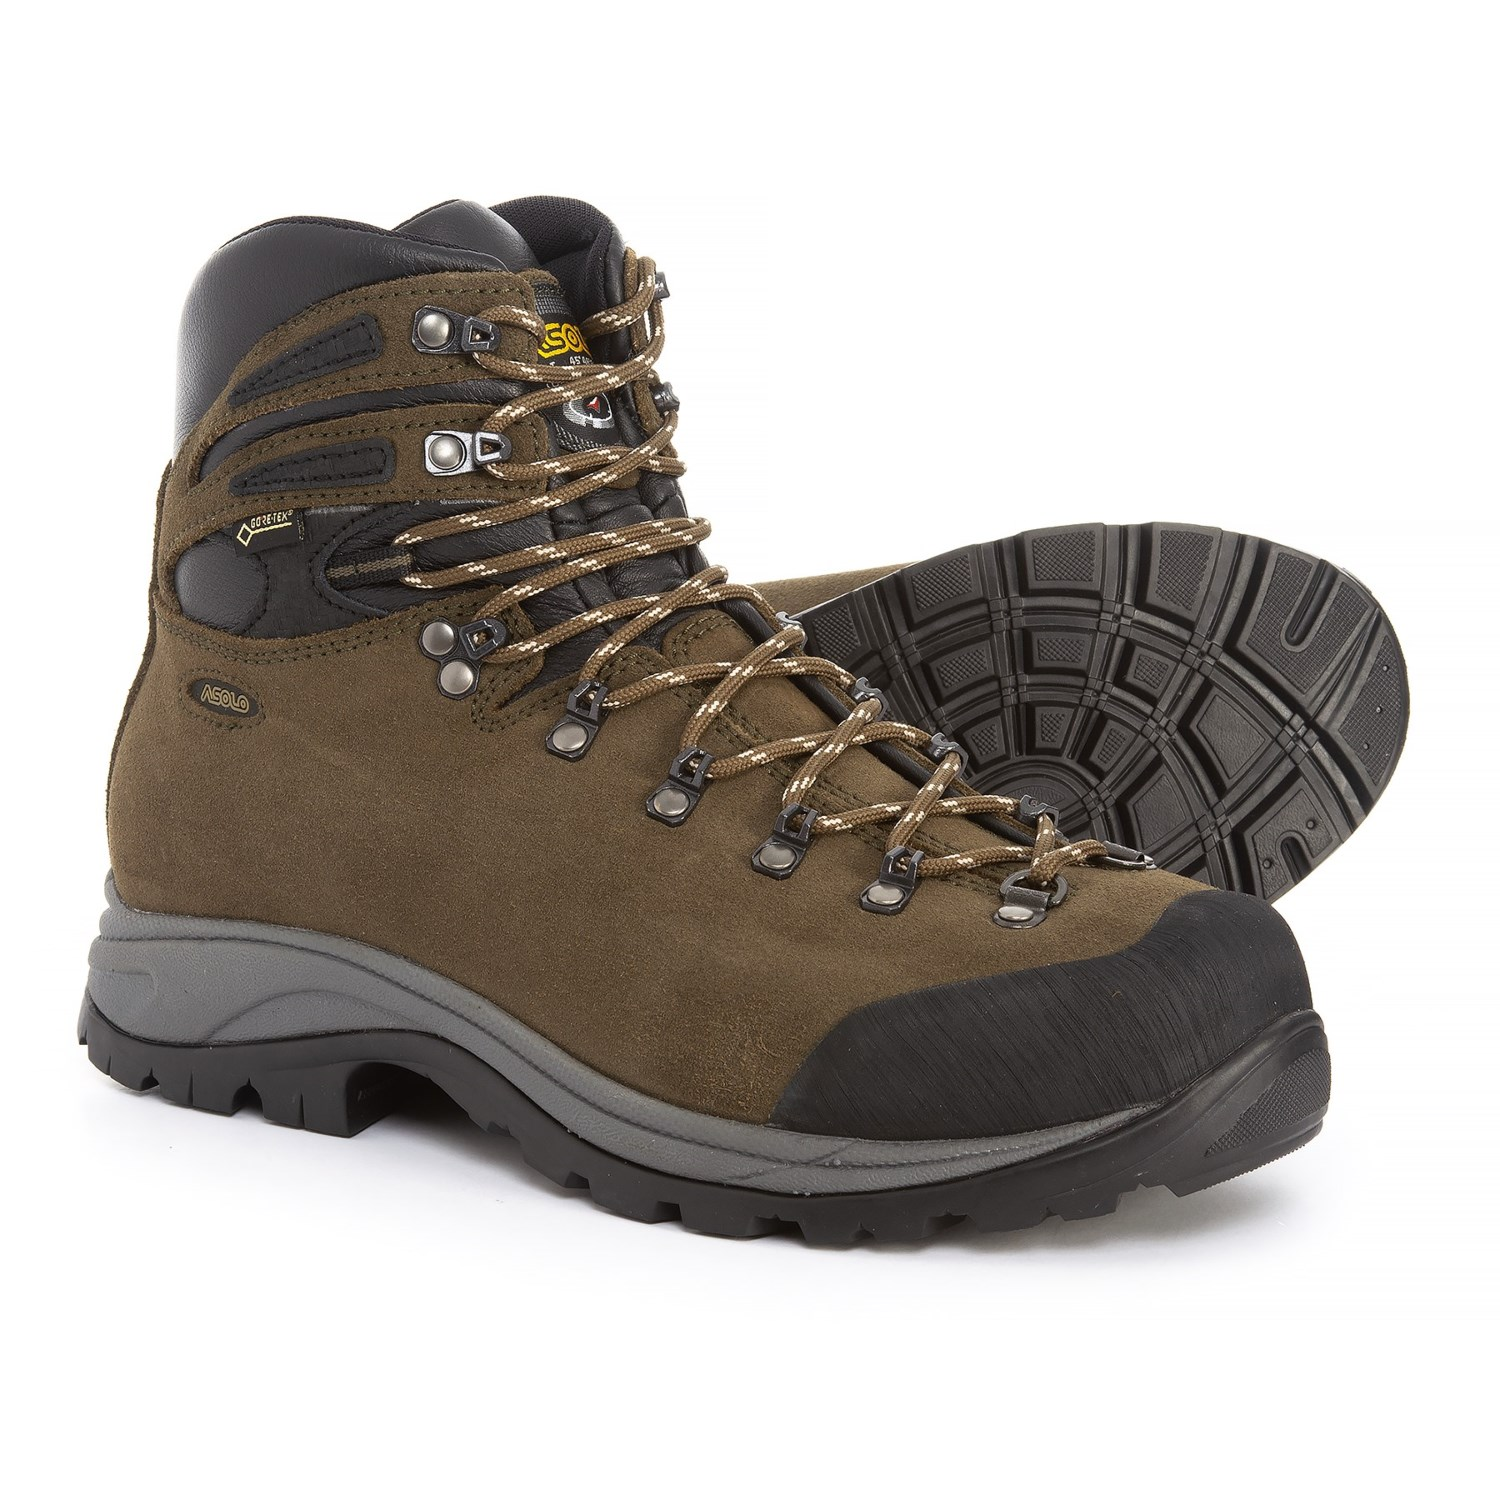 971d8f4d359 Asolo Tribe GV Gore-Tex® Hiking Boots - Waterproof, Leather (For Men)